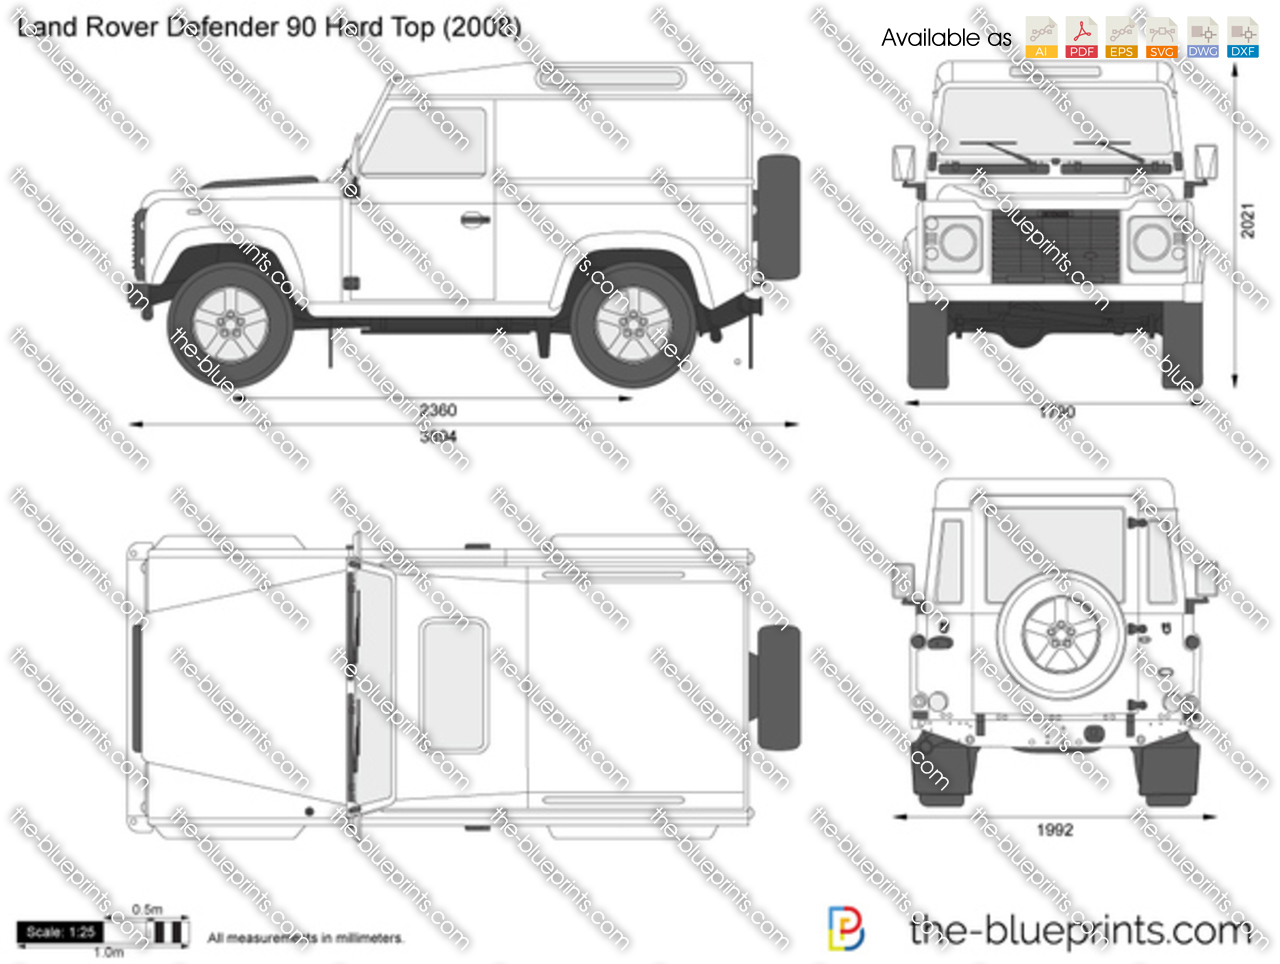 Land Rover Defender 90 Hard Top 2000